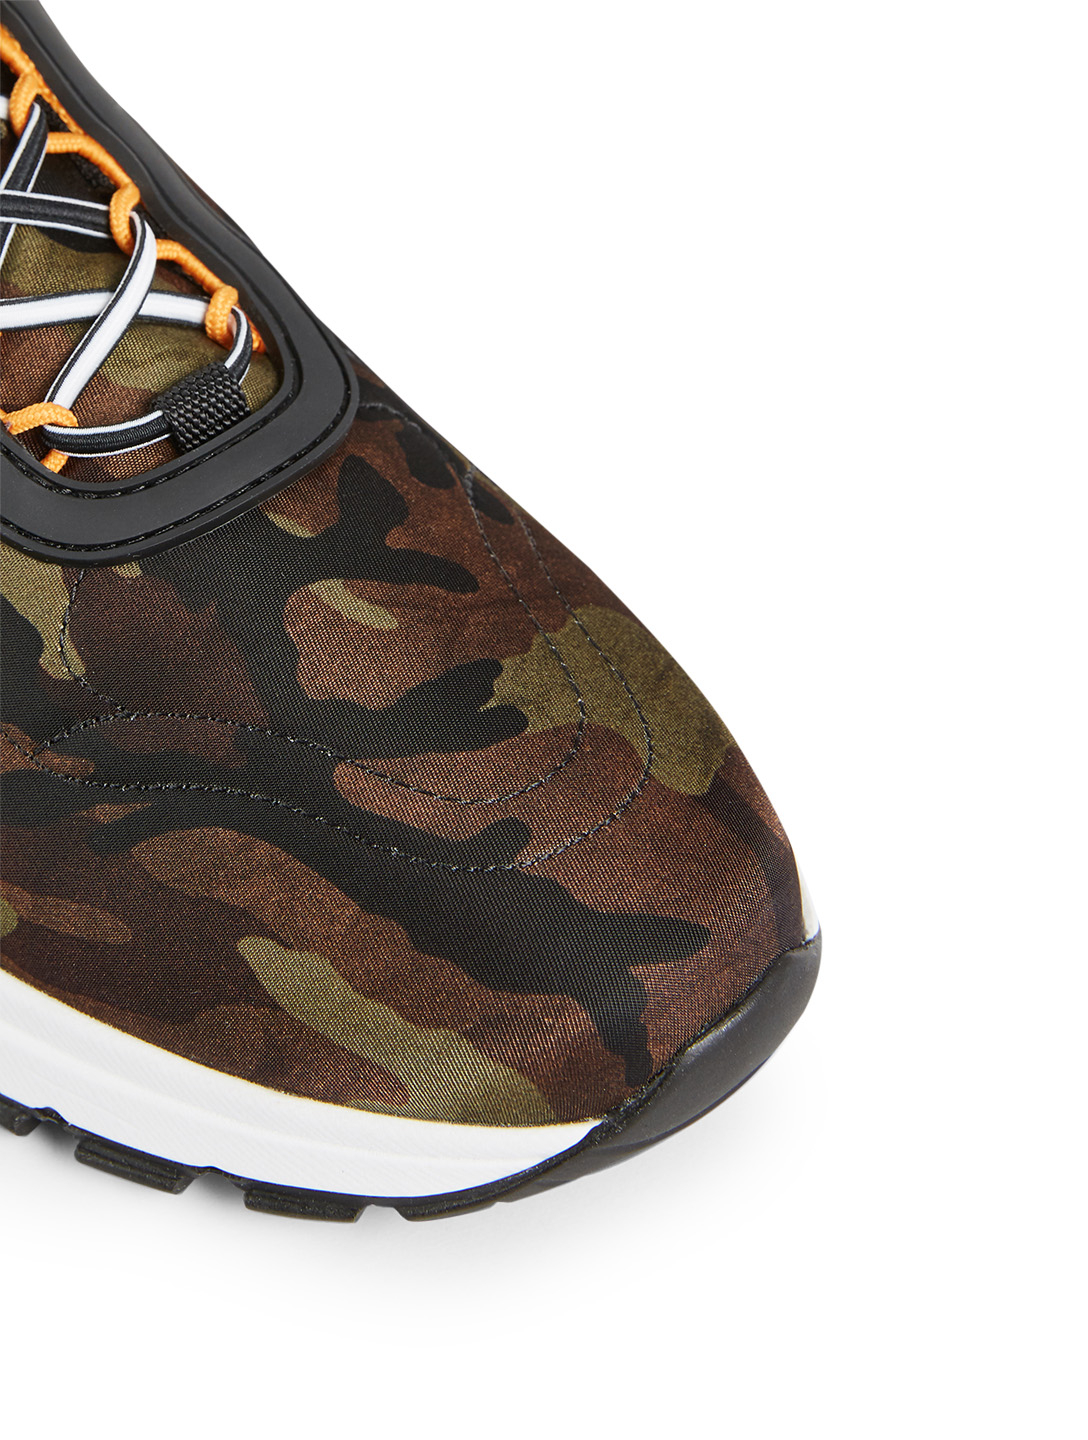 PRADA Nylon Sneakers In Camouflage Women's Multi